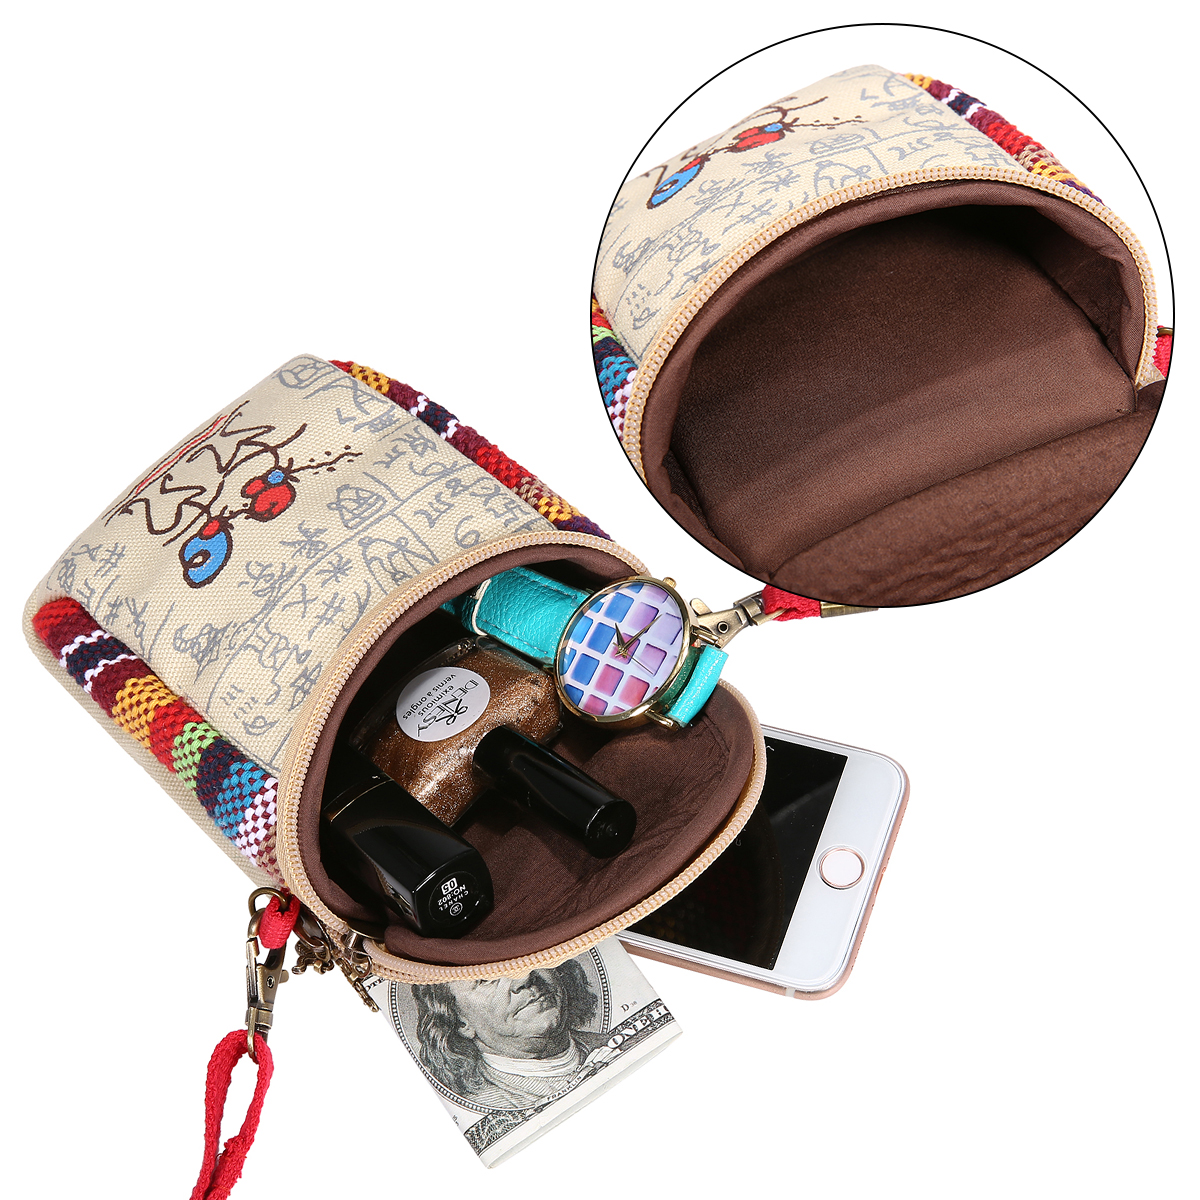 Fashion Ethnic Style Casual Mini Zipper Canvas Women Phone Bag Crossbody Bag Messenger Bag